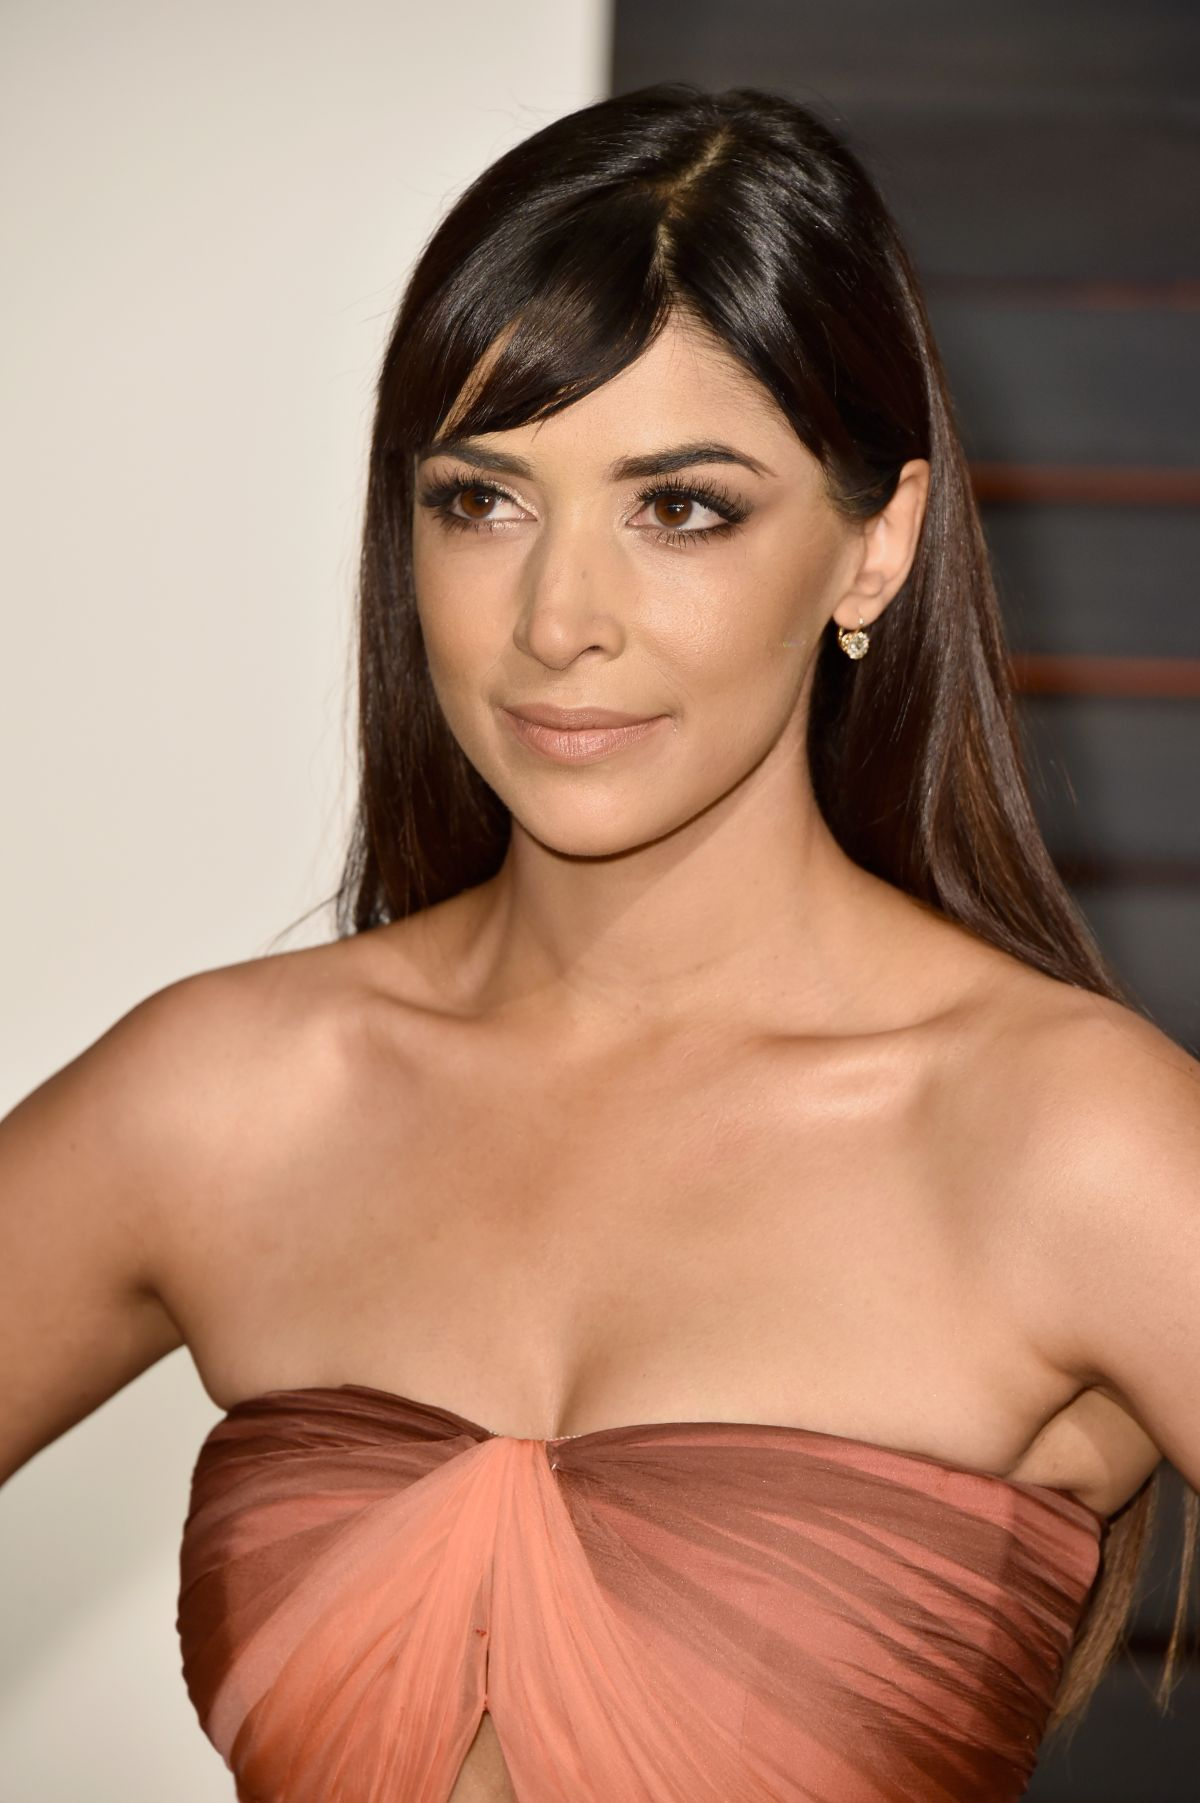 hannah simone listalhannah simone 2016, hannah simone indian, hannah simone gallery, hannah simone net worth, hannah simone listal, hannah simone zooey deschanel, hannah simone eye, hannah simone instagram, hannah simone no makeup, hannah simone boyfriend, hannah simone pregnant 2013, hannah simone zimbio, hannah simone weight loss, hannah simone before nose job